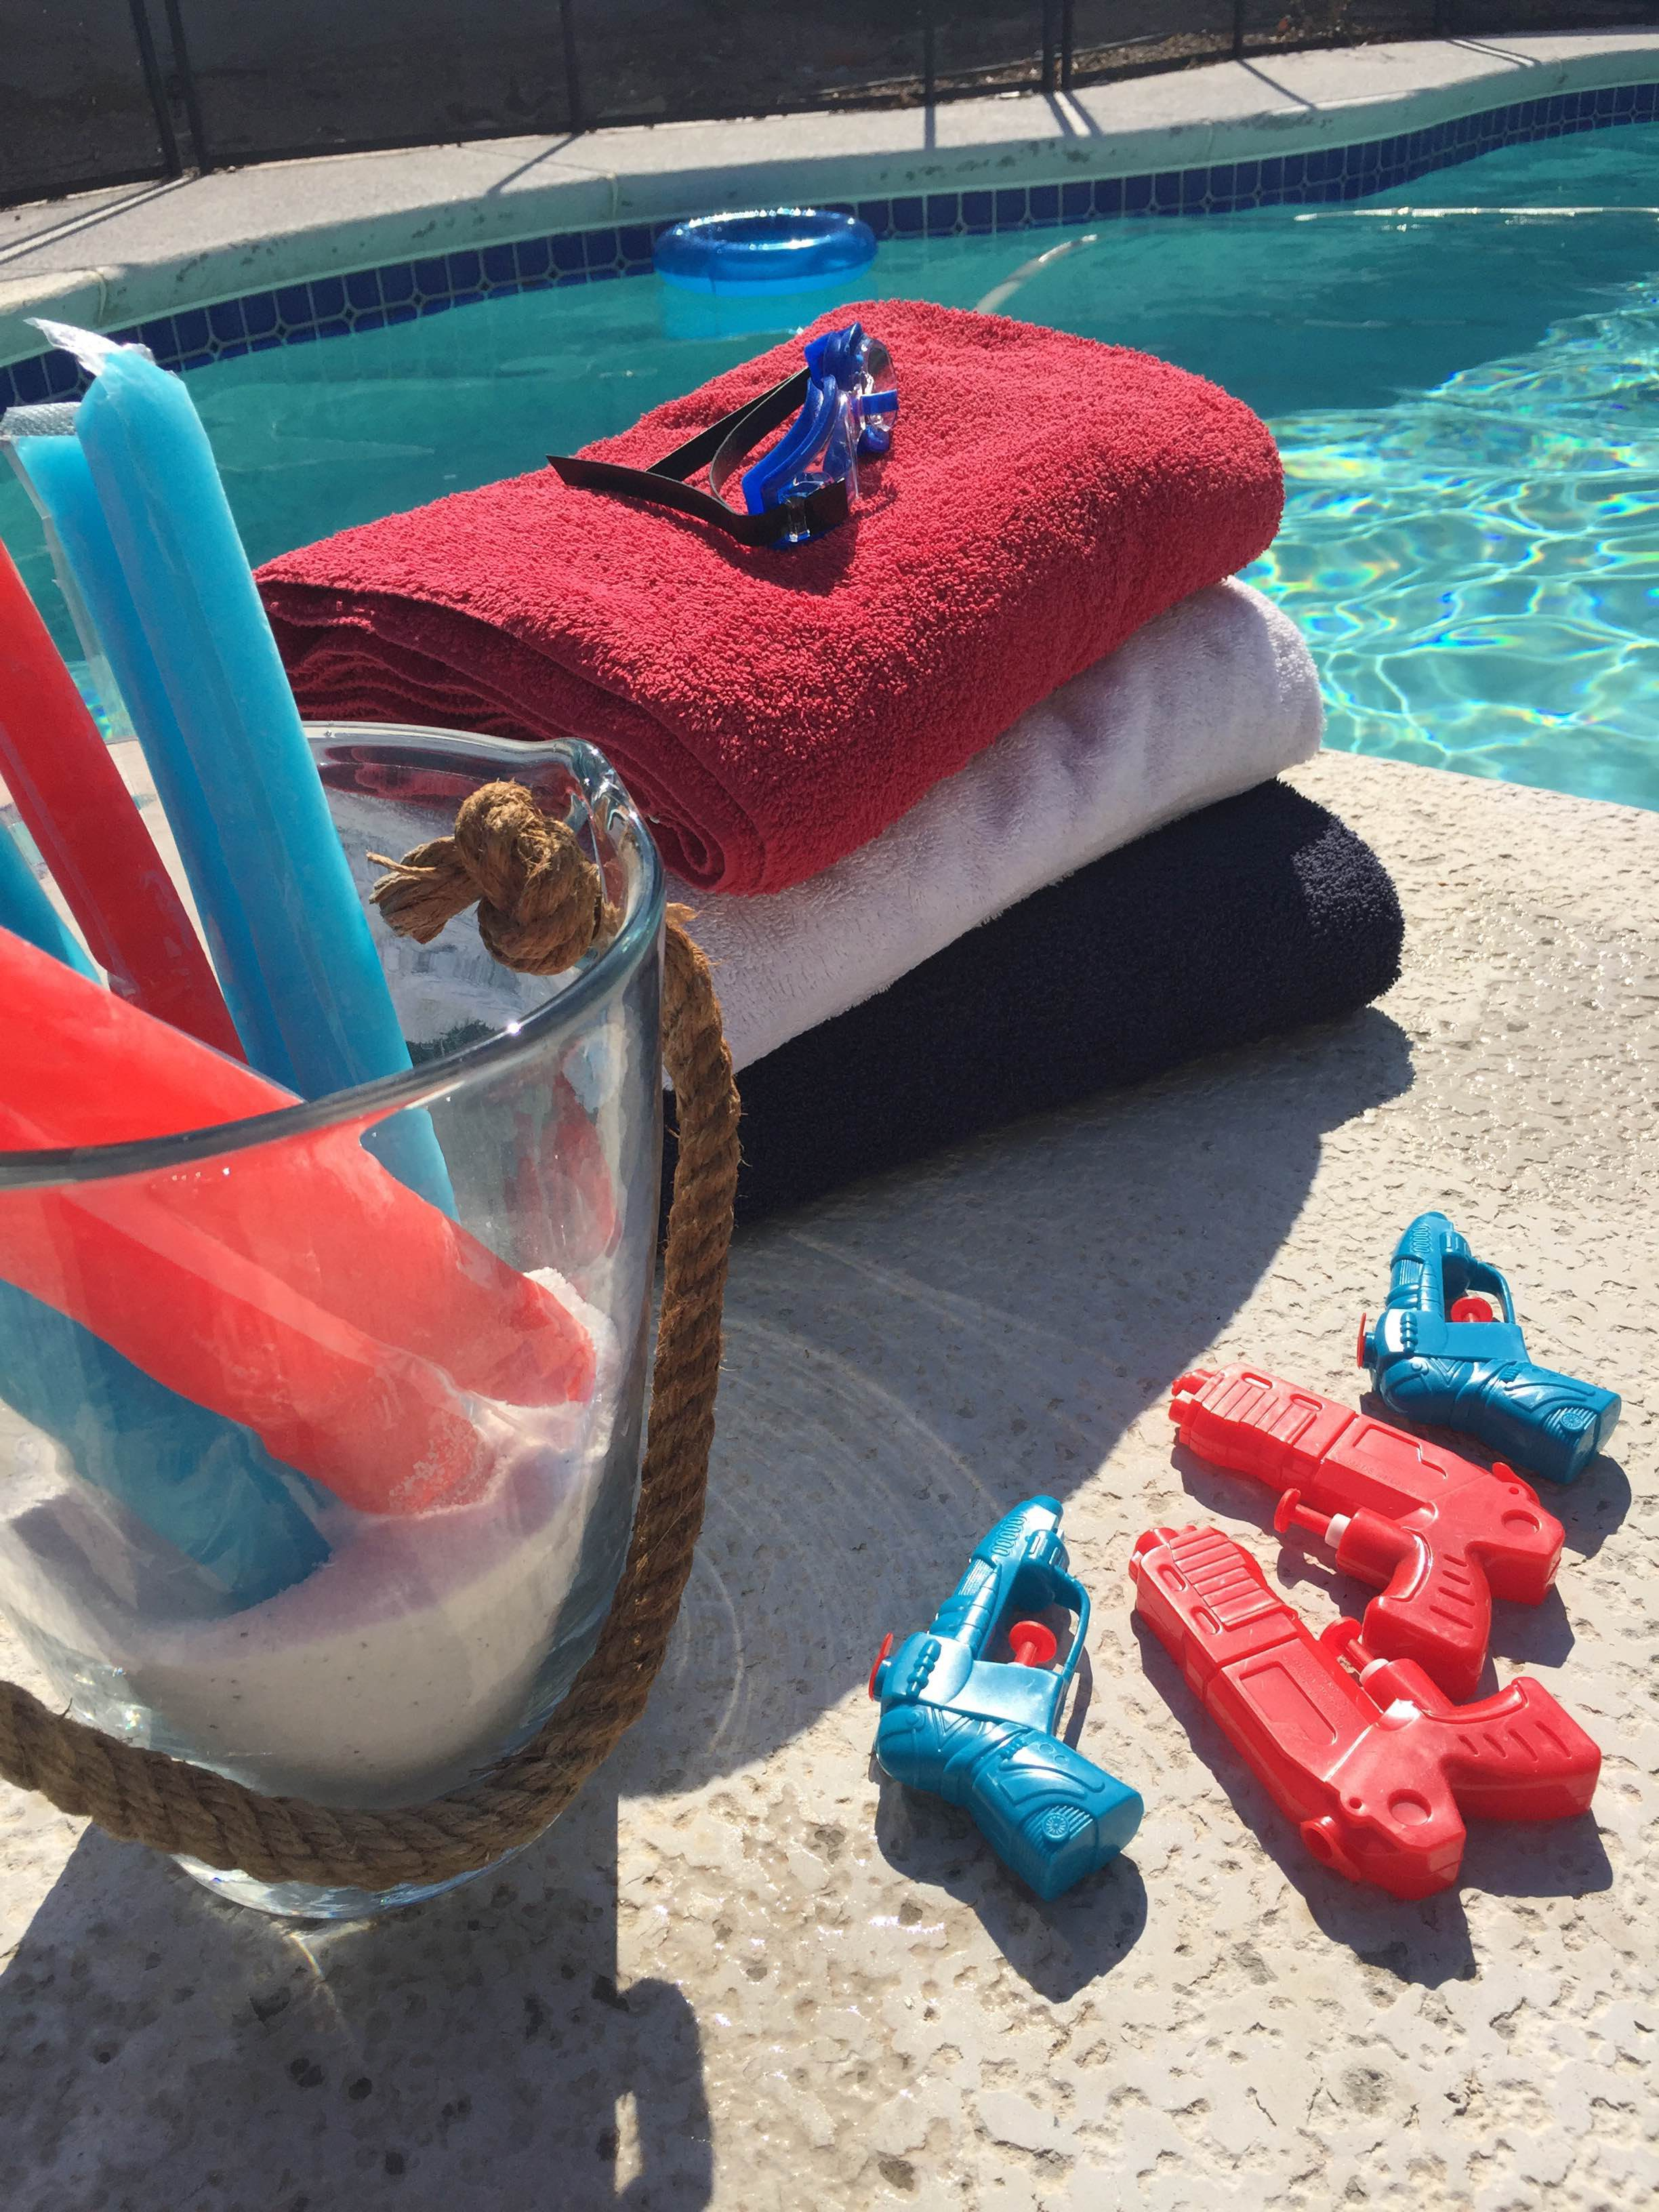 Popsicles and red, white and blue towels pool side.